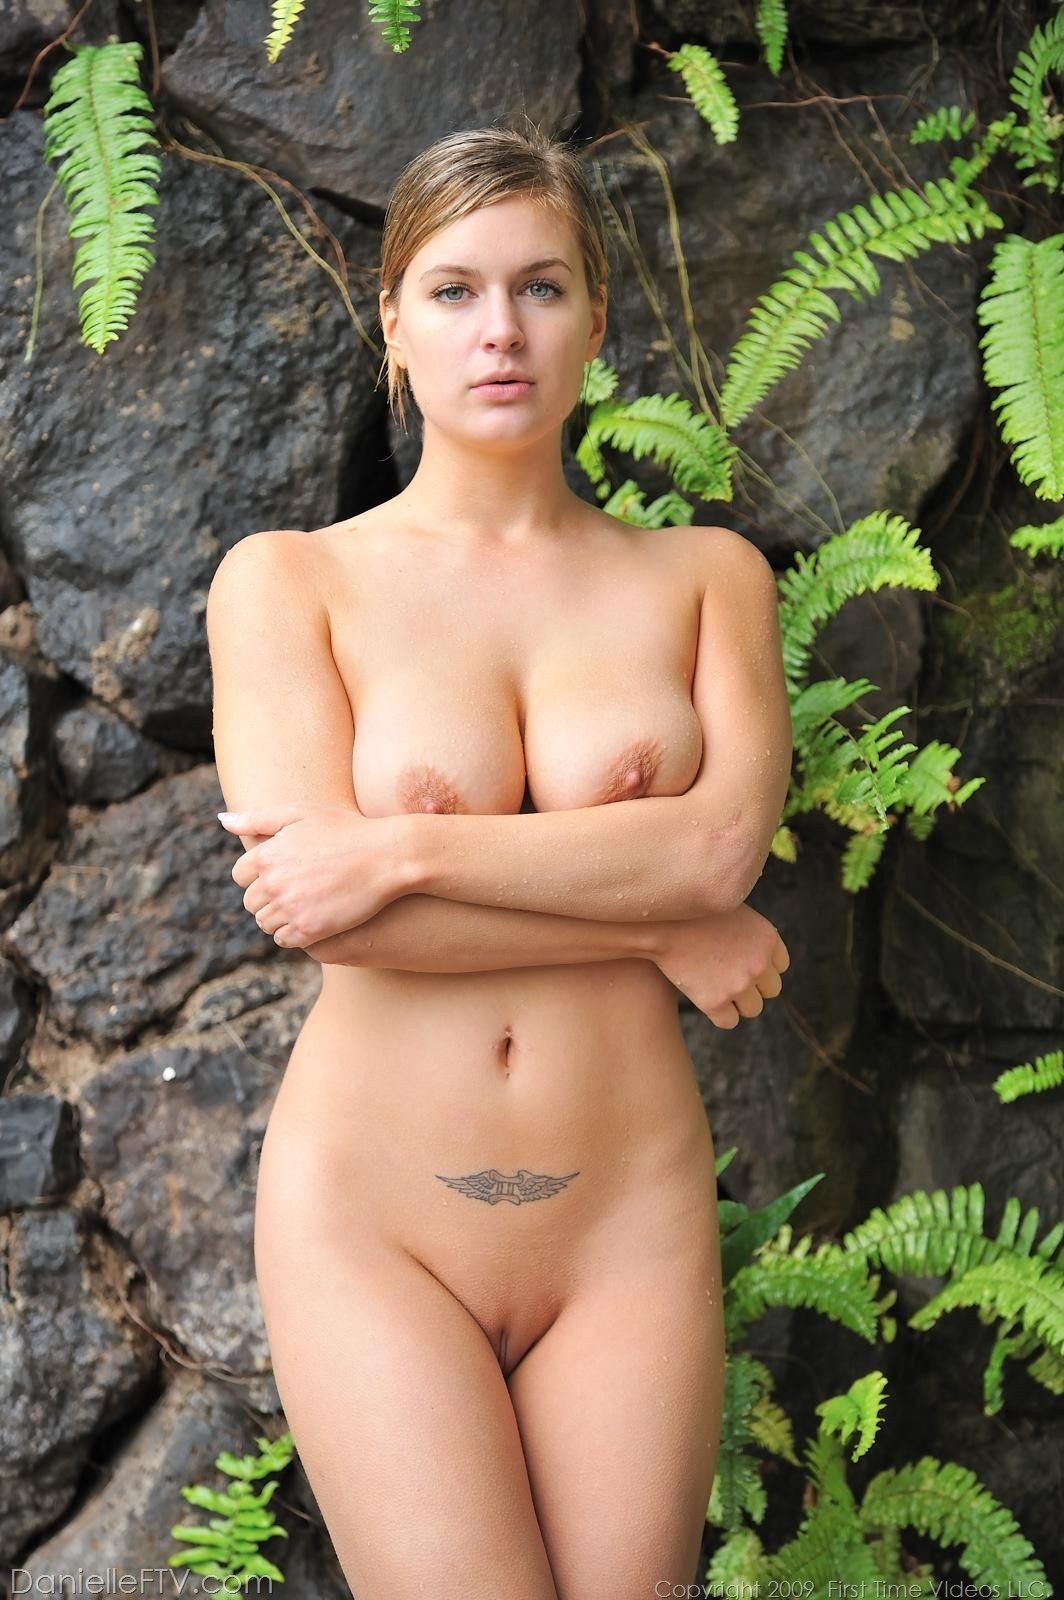 naked pics of danielle from american pickers